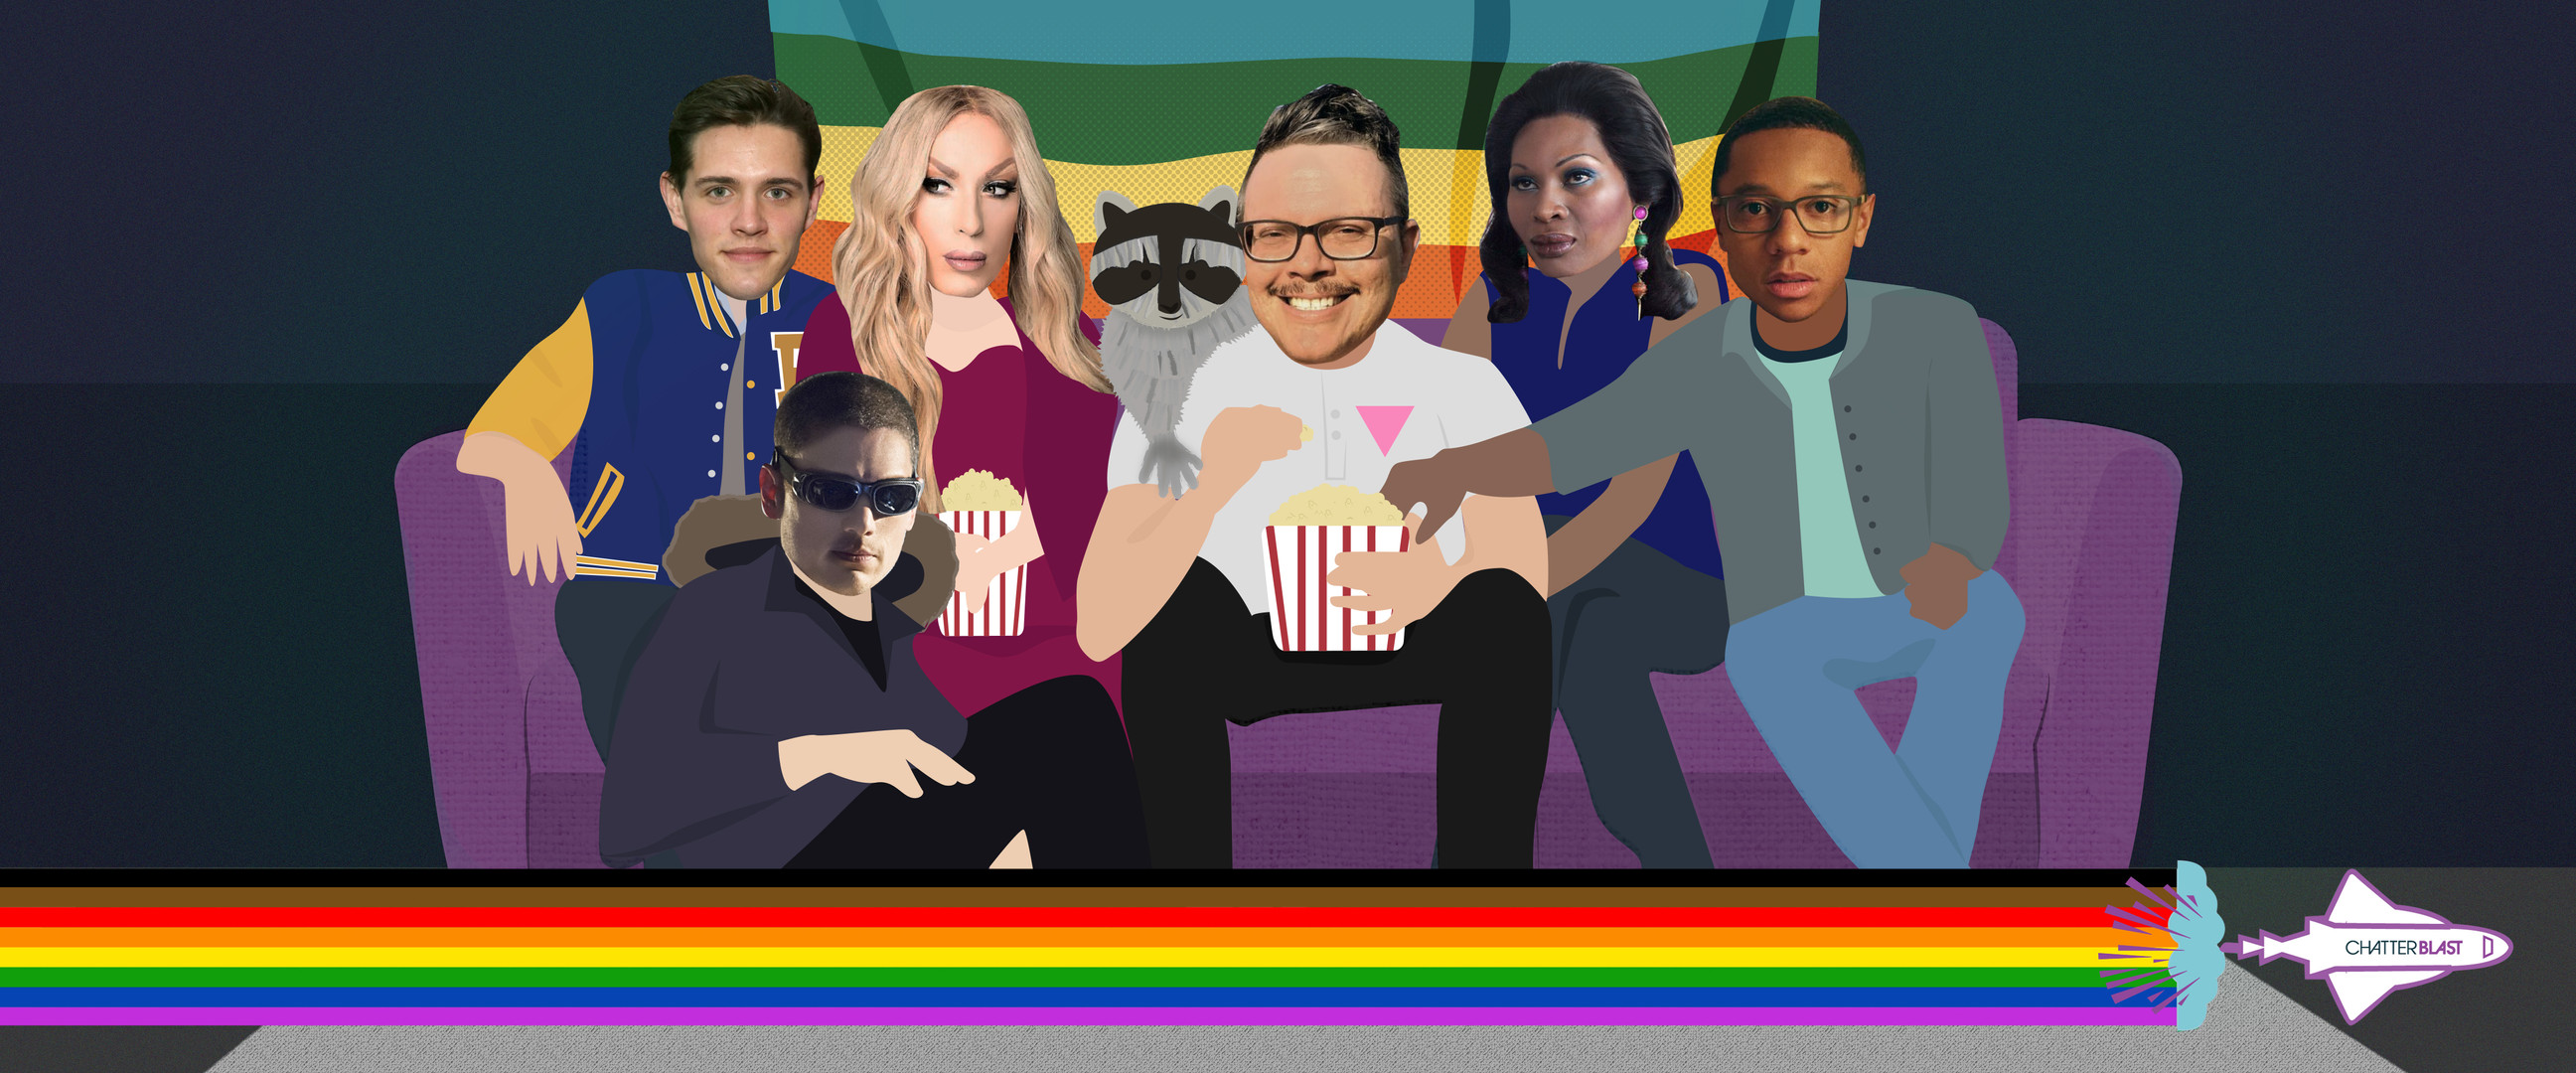 Pride TV: LGBTQ Representation in Video Storytelling